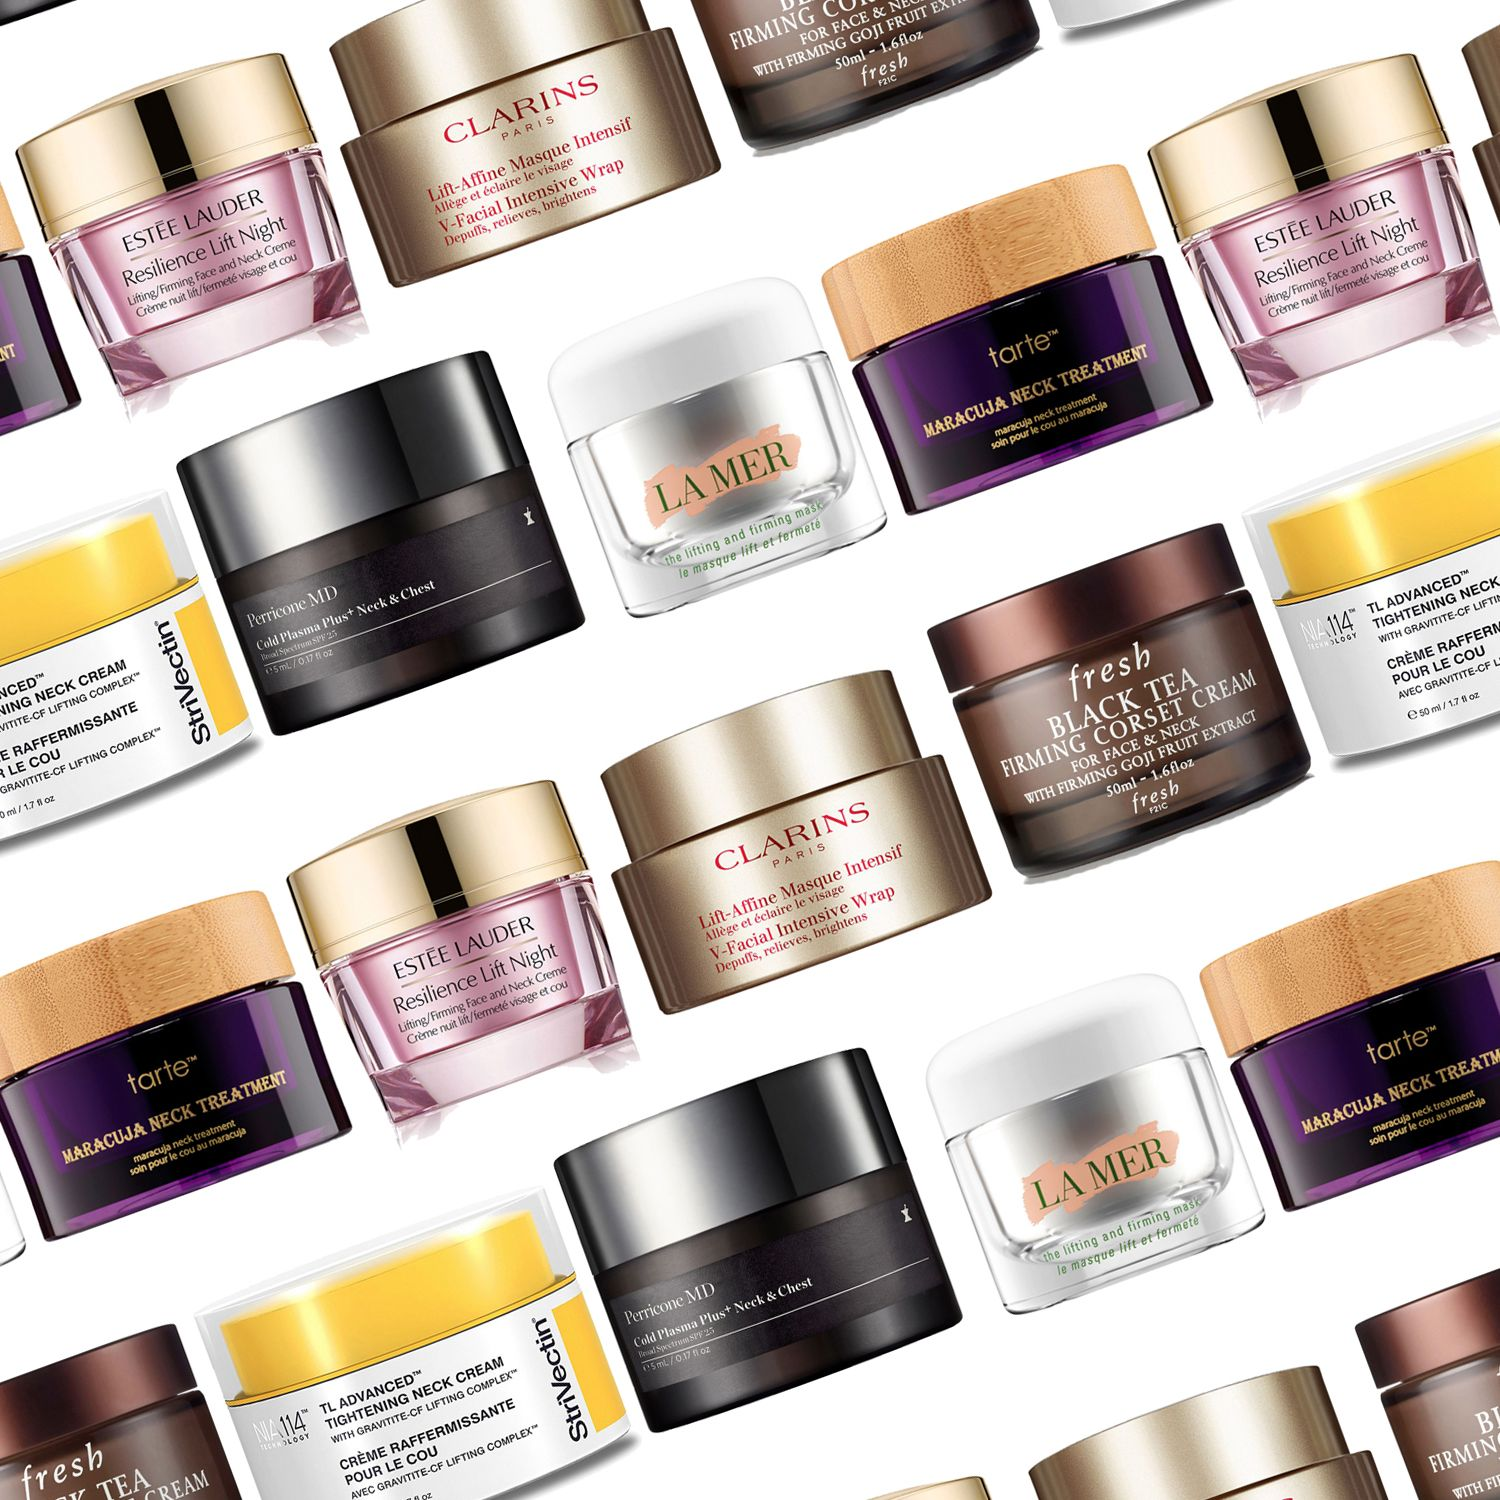 The 20 Best Neck Creams to Firm, Tighten, and Brighten Your Skin